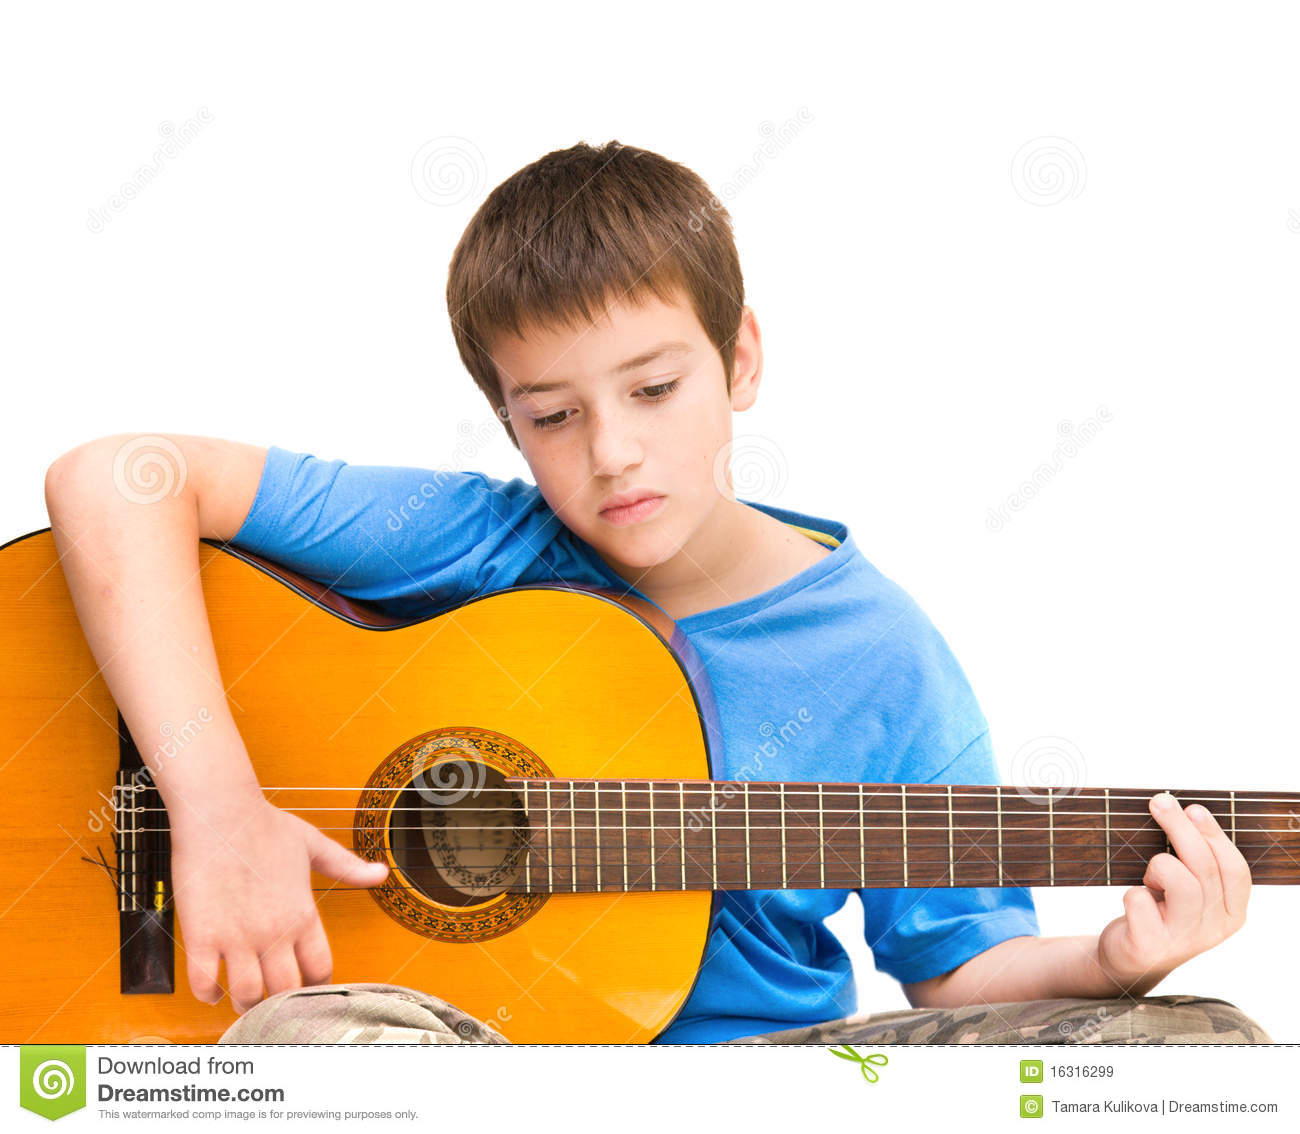 learning to play acoustic guitar stock image image of guitar cute 16316299. Black Bedroom Furniture Sets. Home Design Ideas